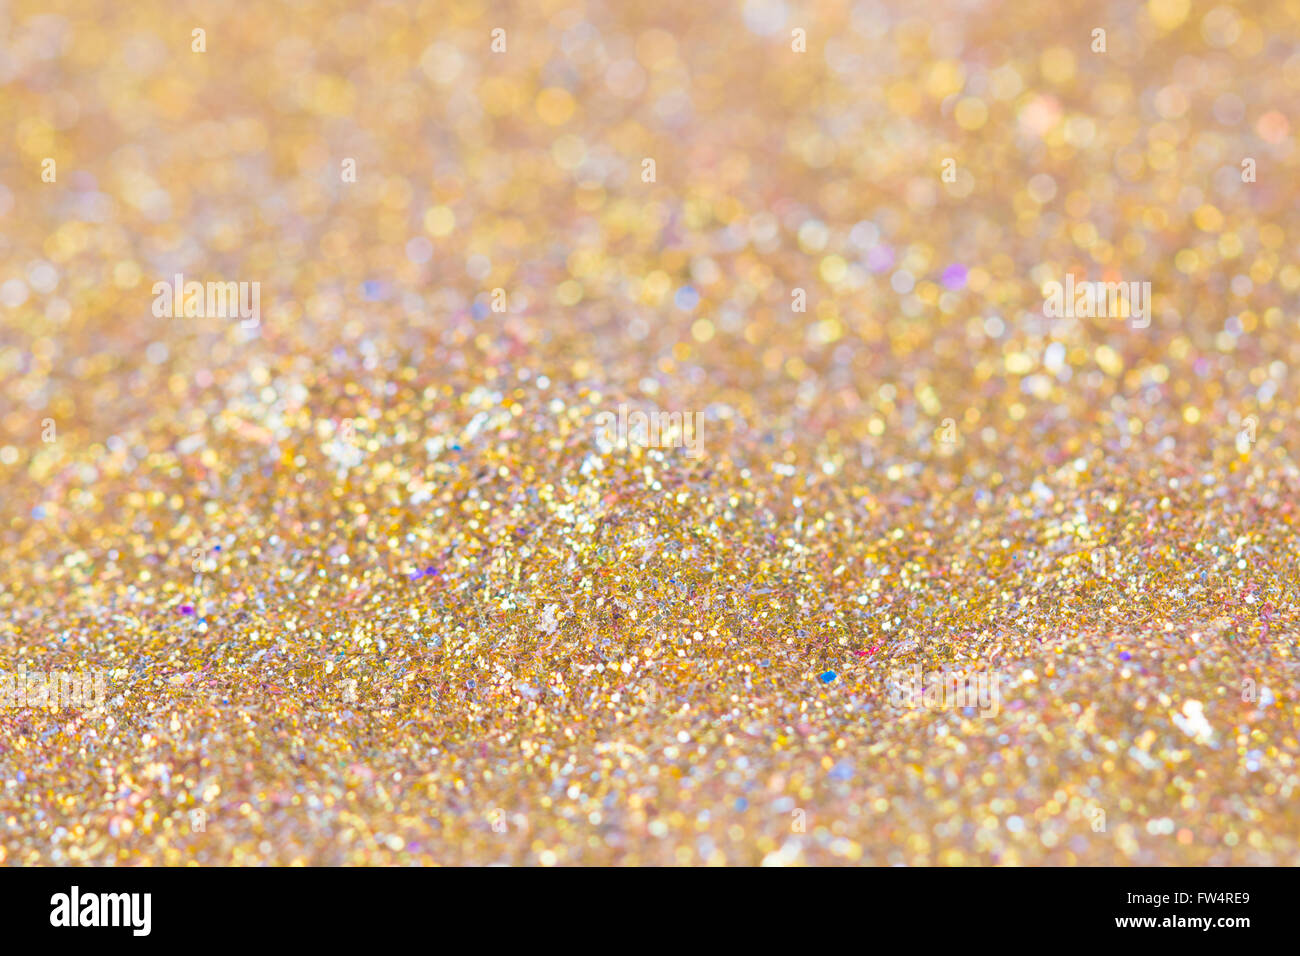 Glitters for background, template or presentation - Stock Image